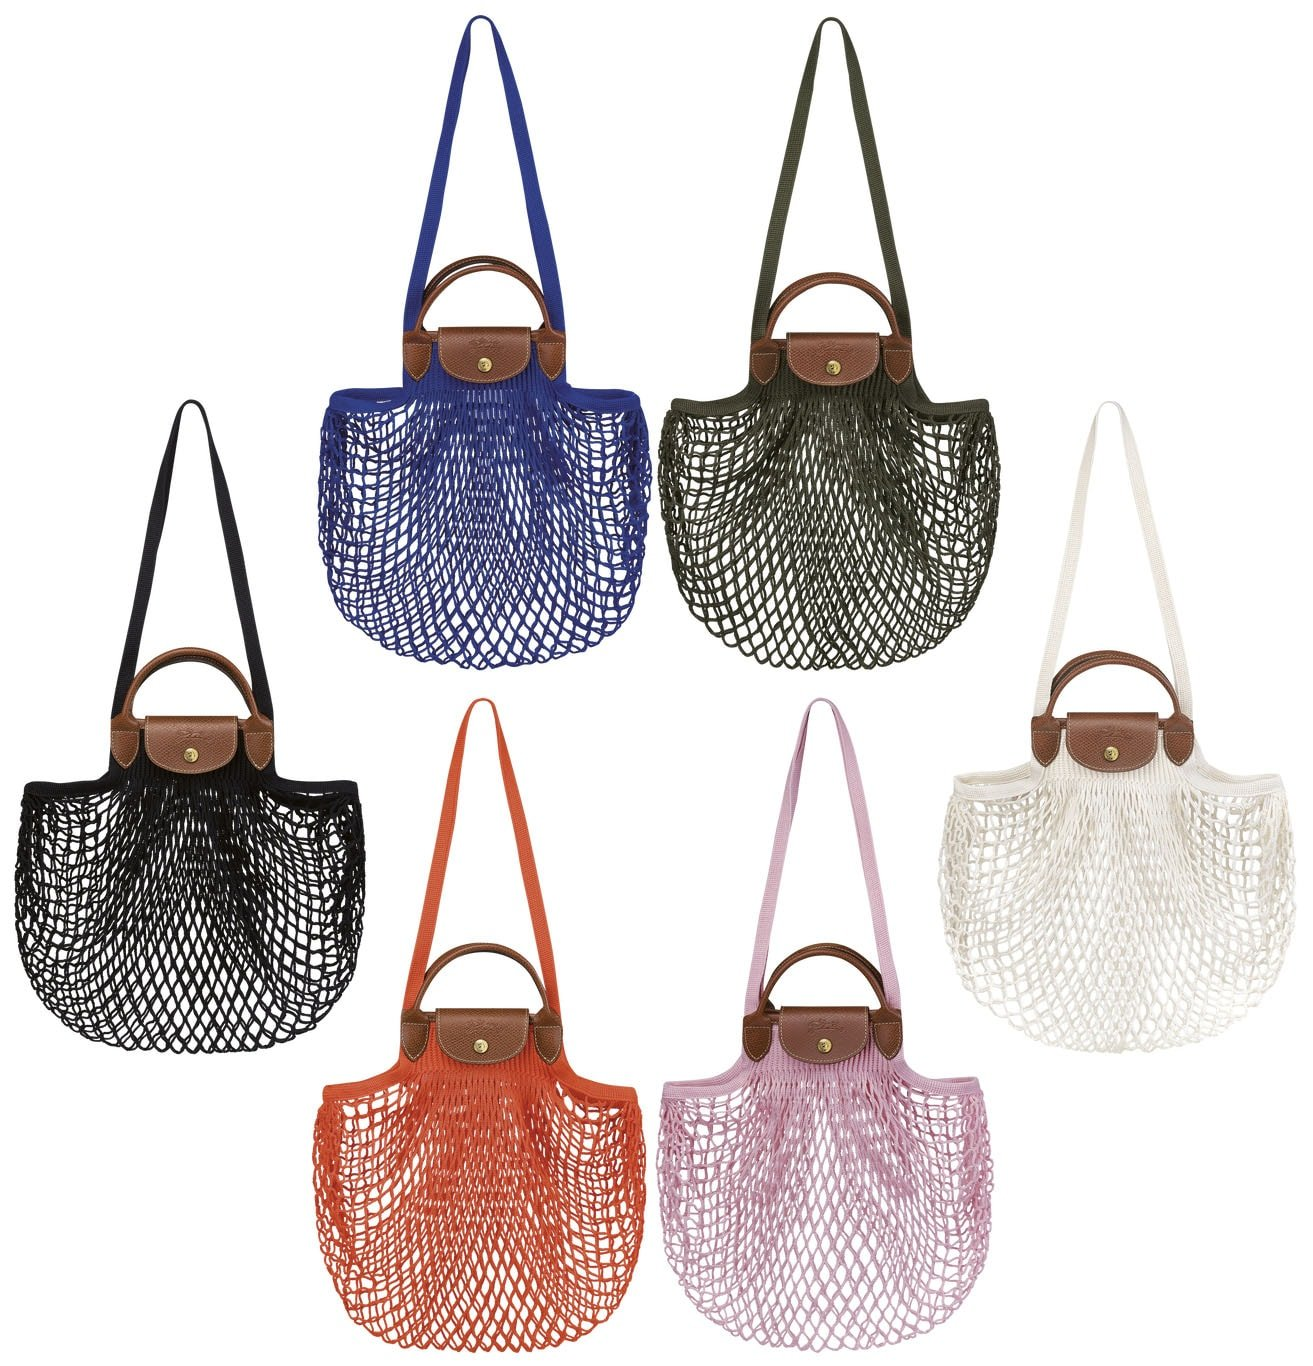 The Filet is a net shopping bag that features the Le Pliage leather handles